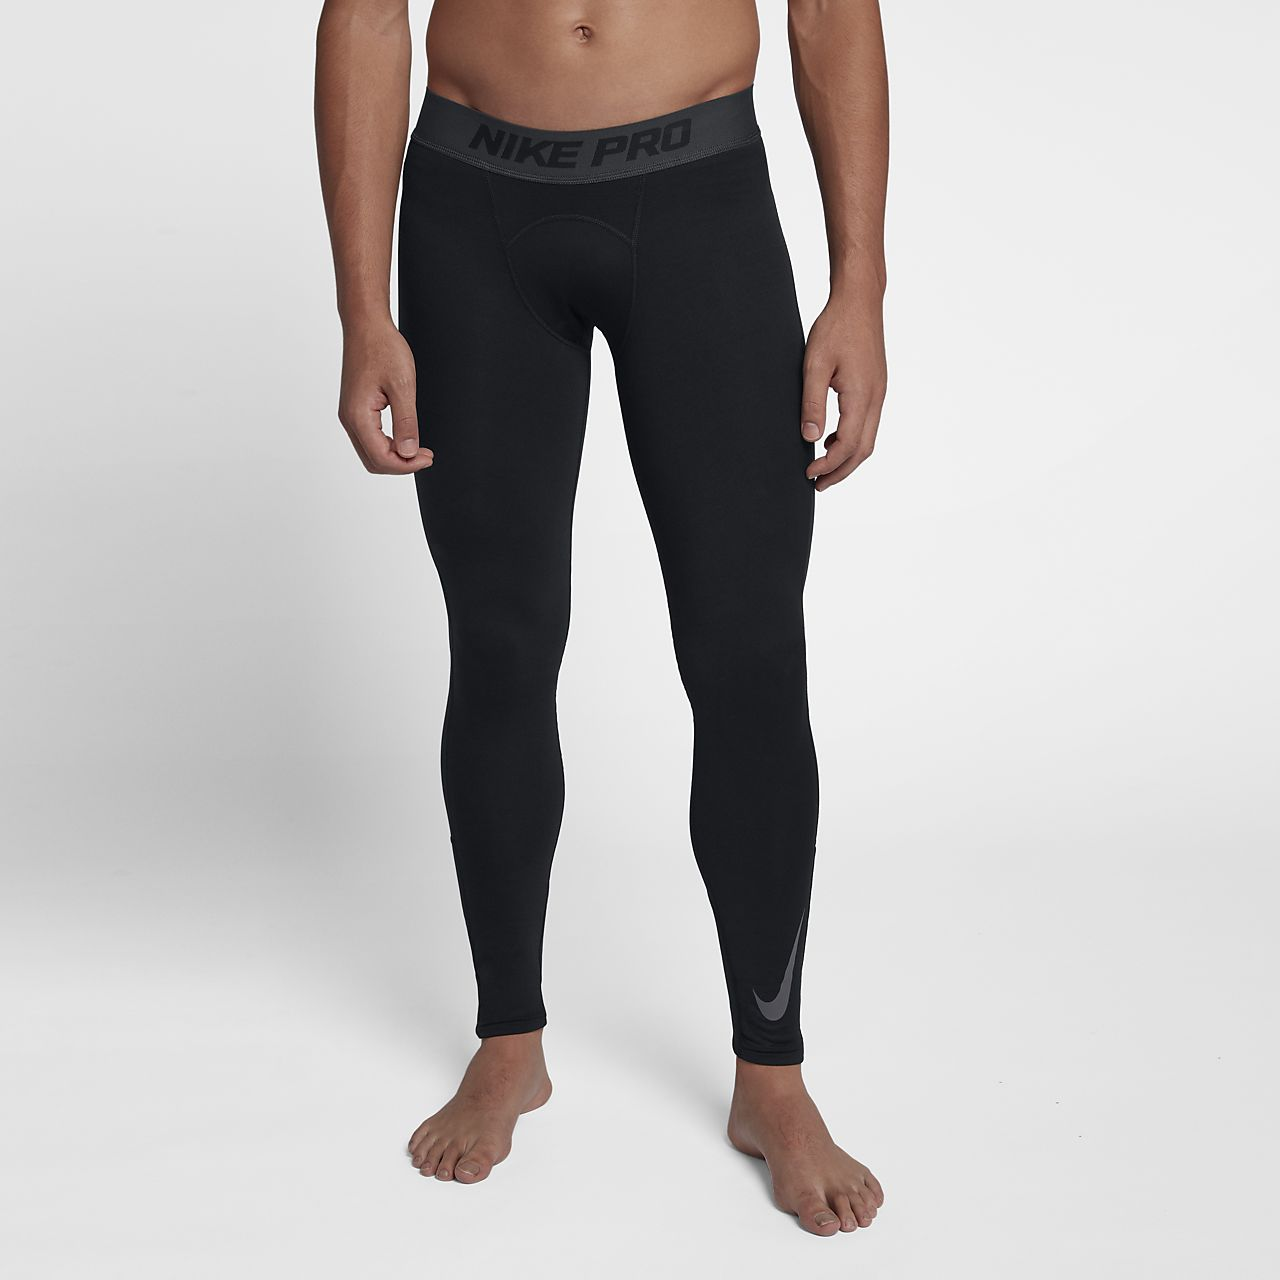 Men's Nike Pro Conpression Pants Xxl Reputation First Clothing, Shoes & Accessories Men's Clothing